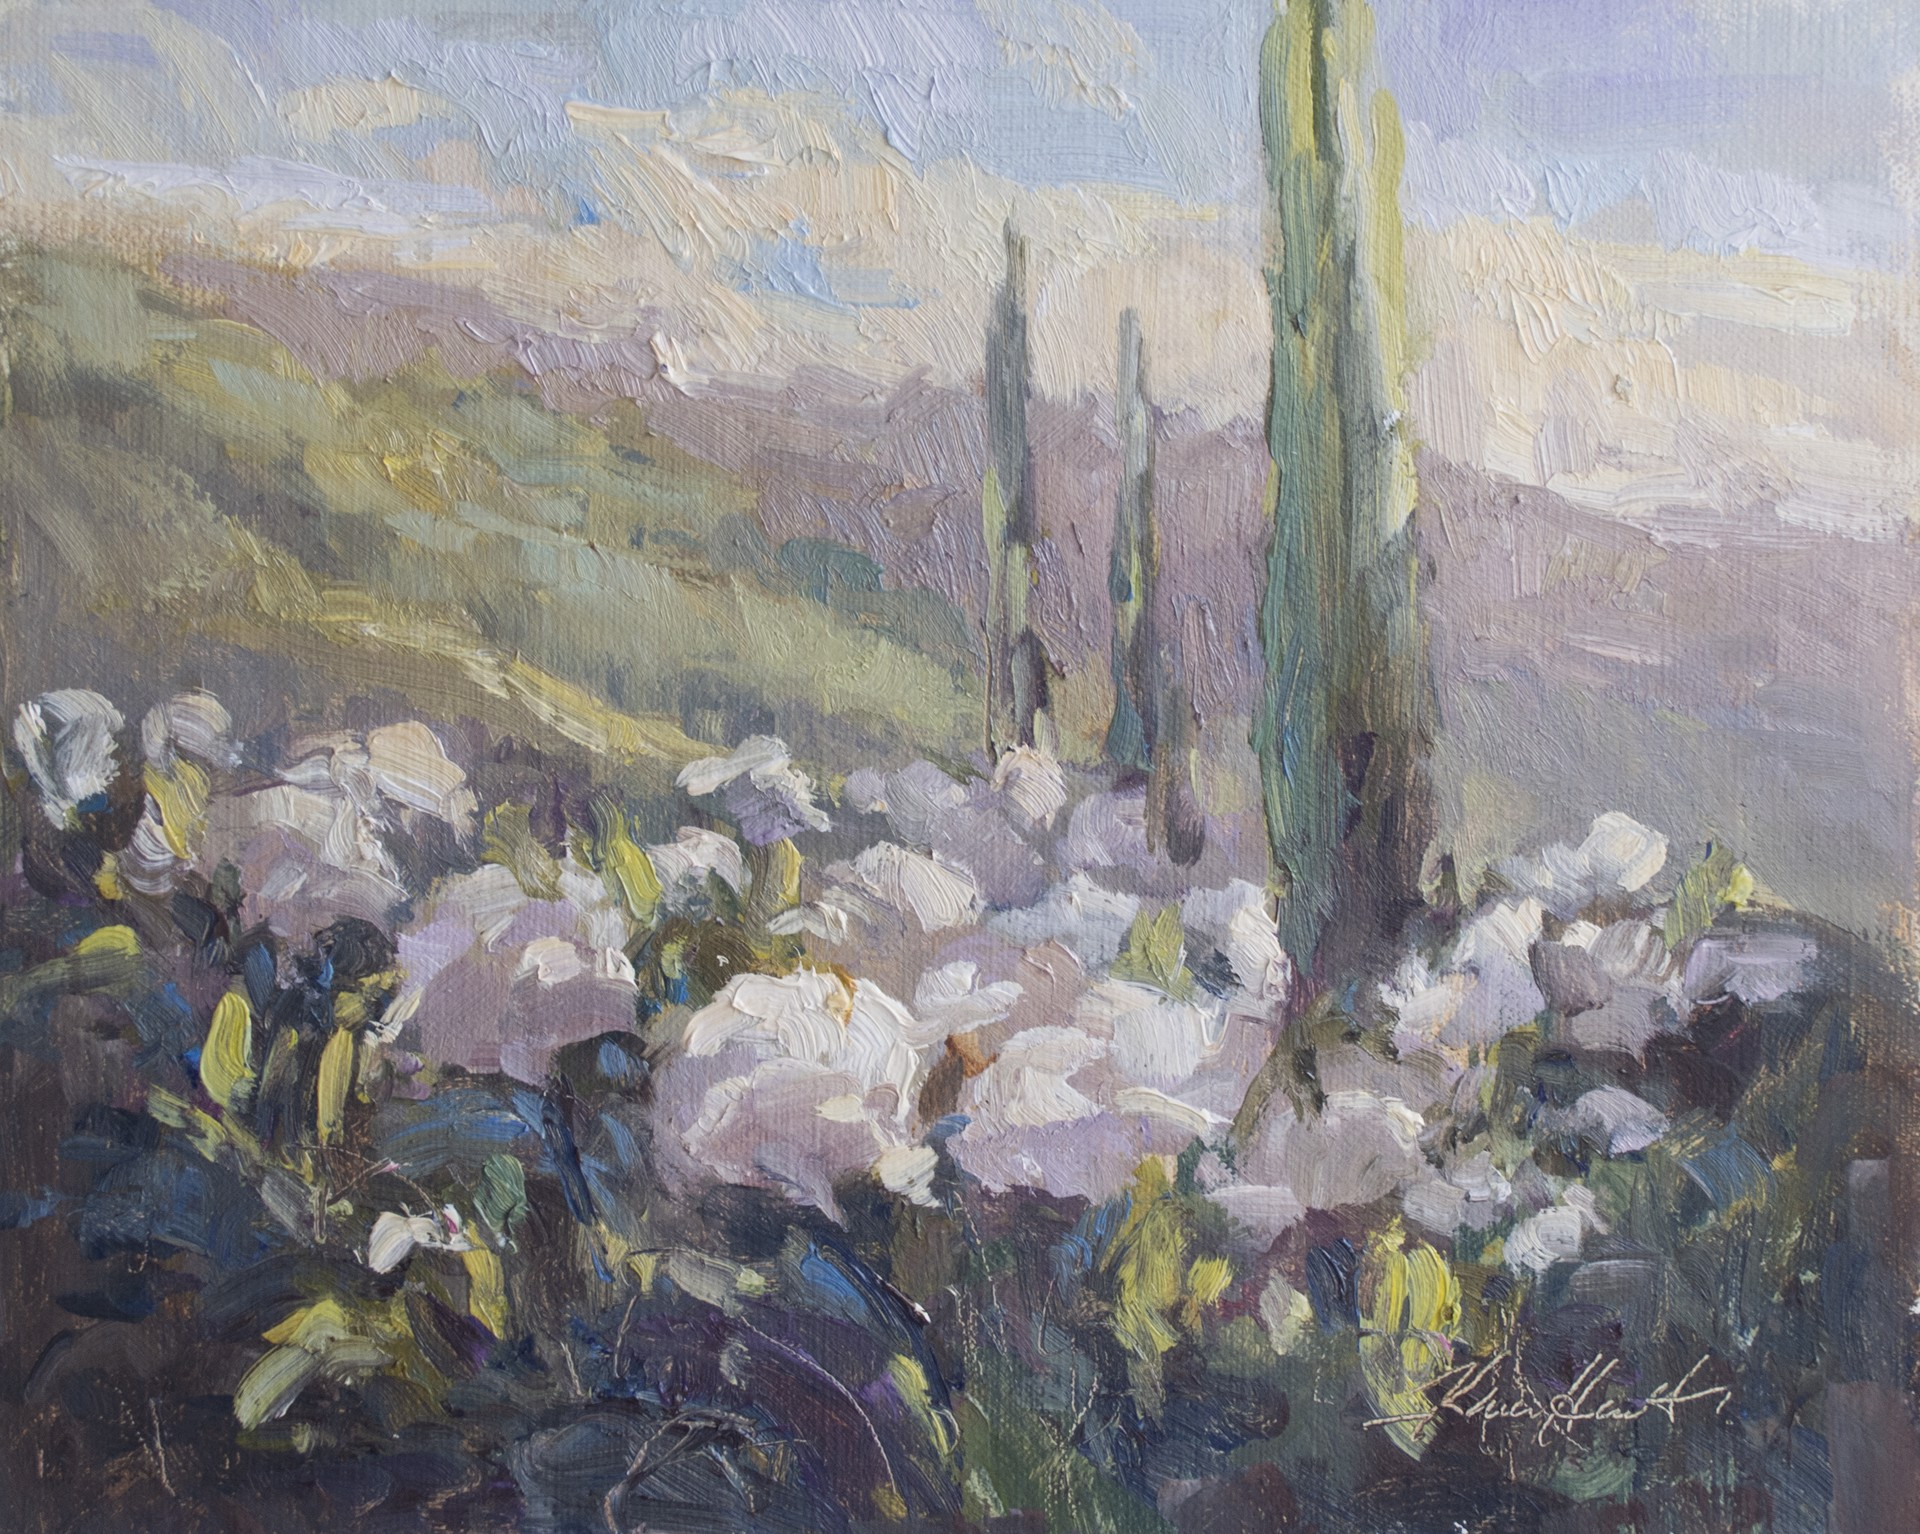 White Roses and Cypress Trees by Karen Hewitt Hagan